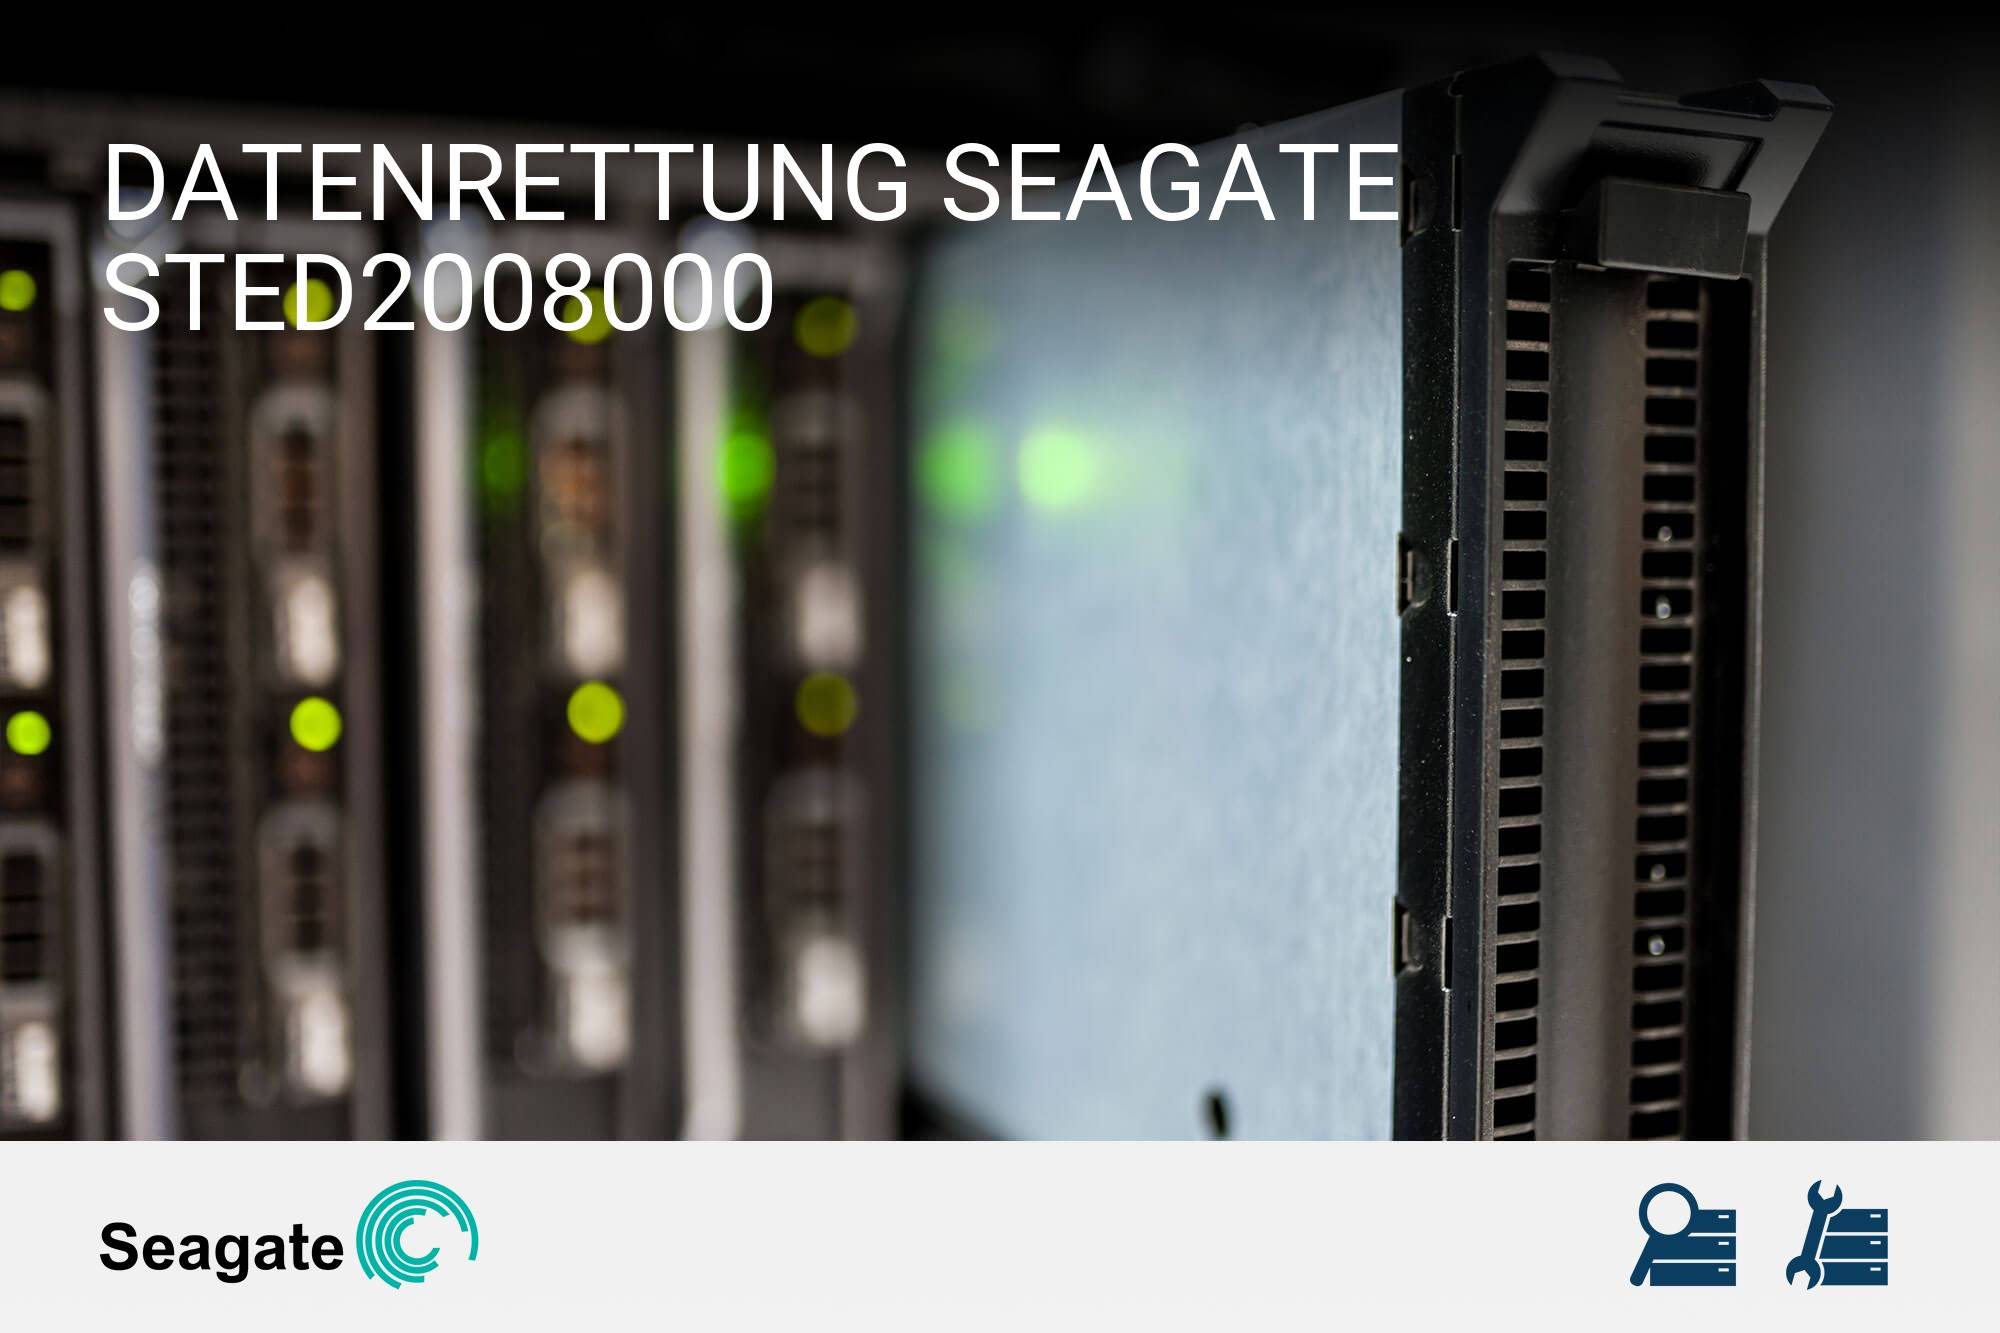 Seagate STED2008000